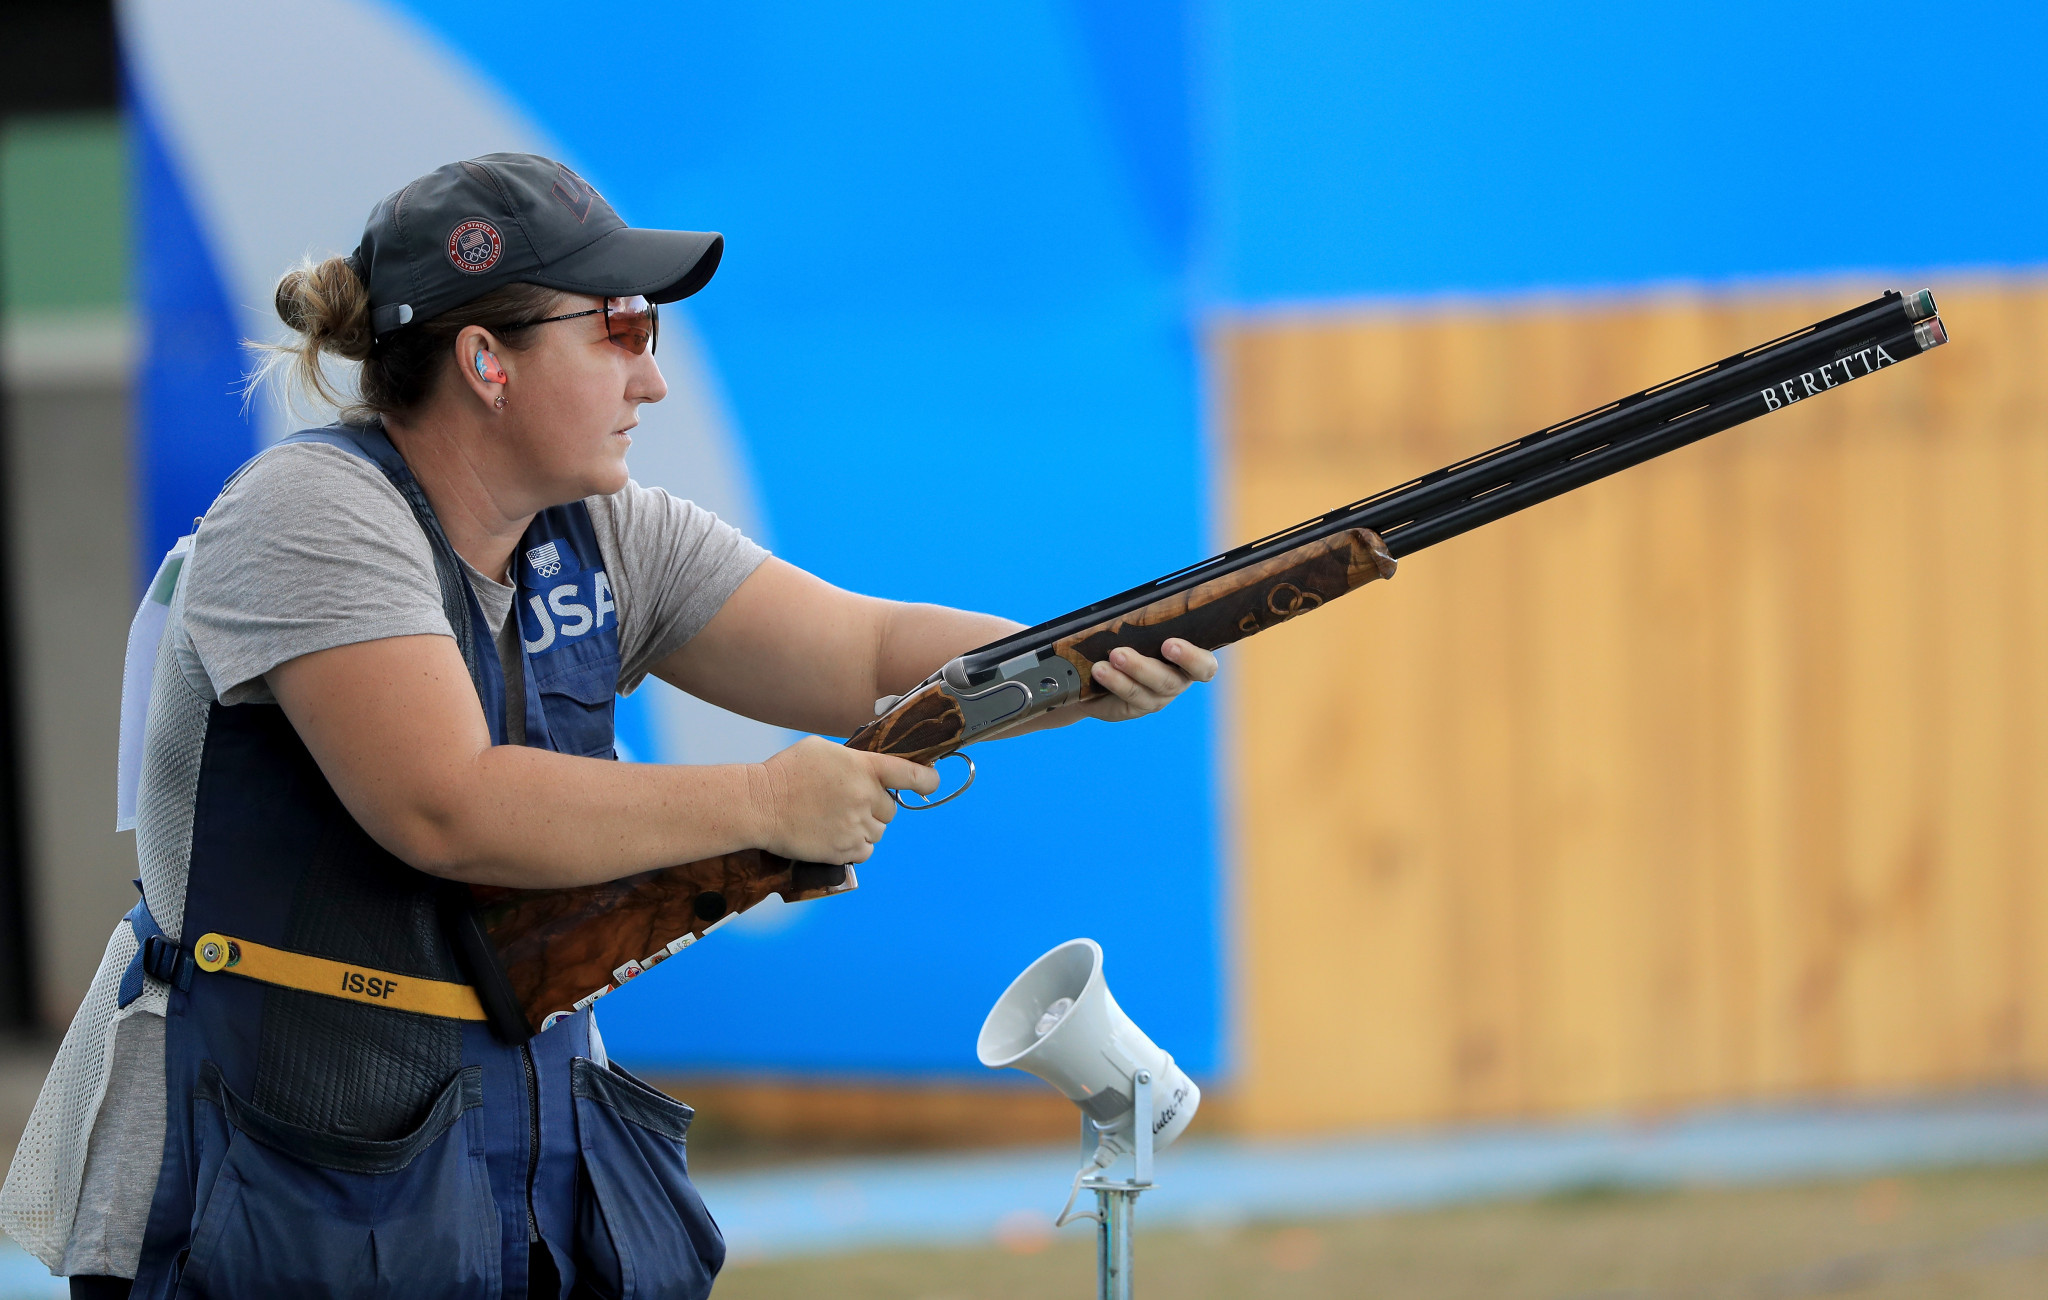 United States shooters are currently preparing for the Championship of the Americas in Mexico ©USA Shooting